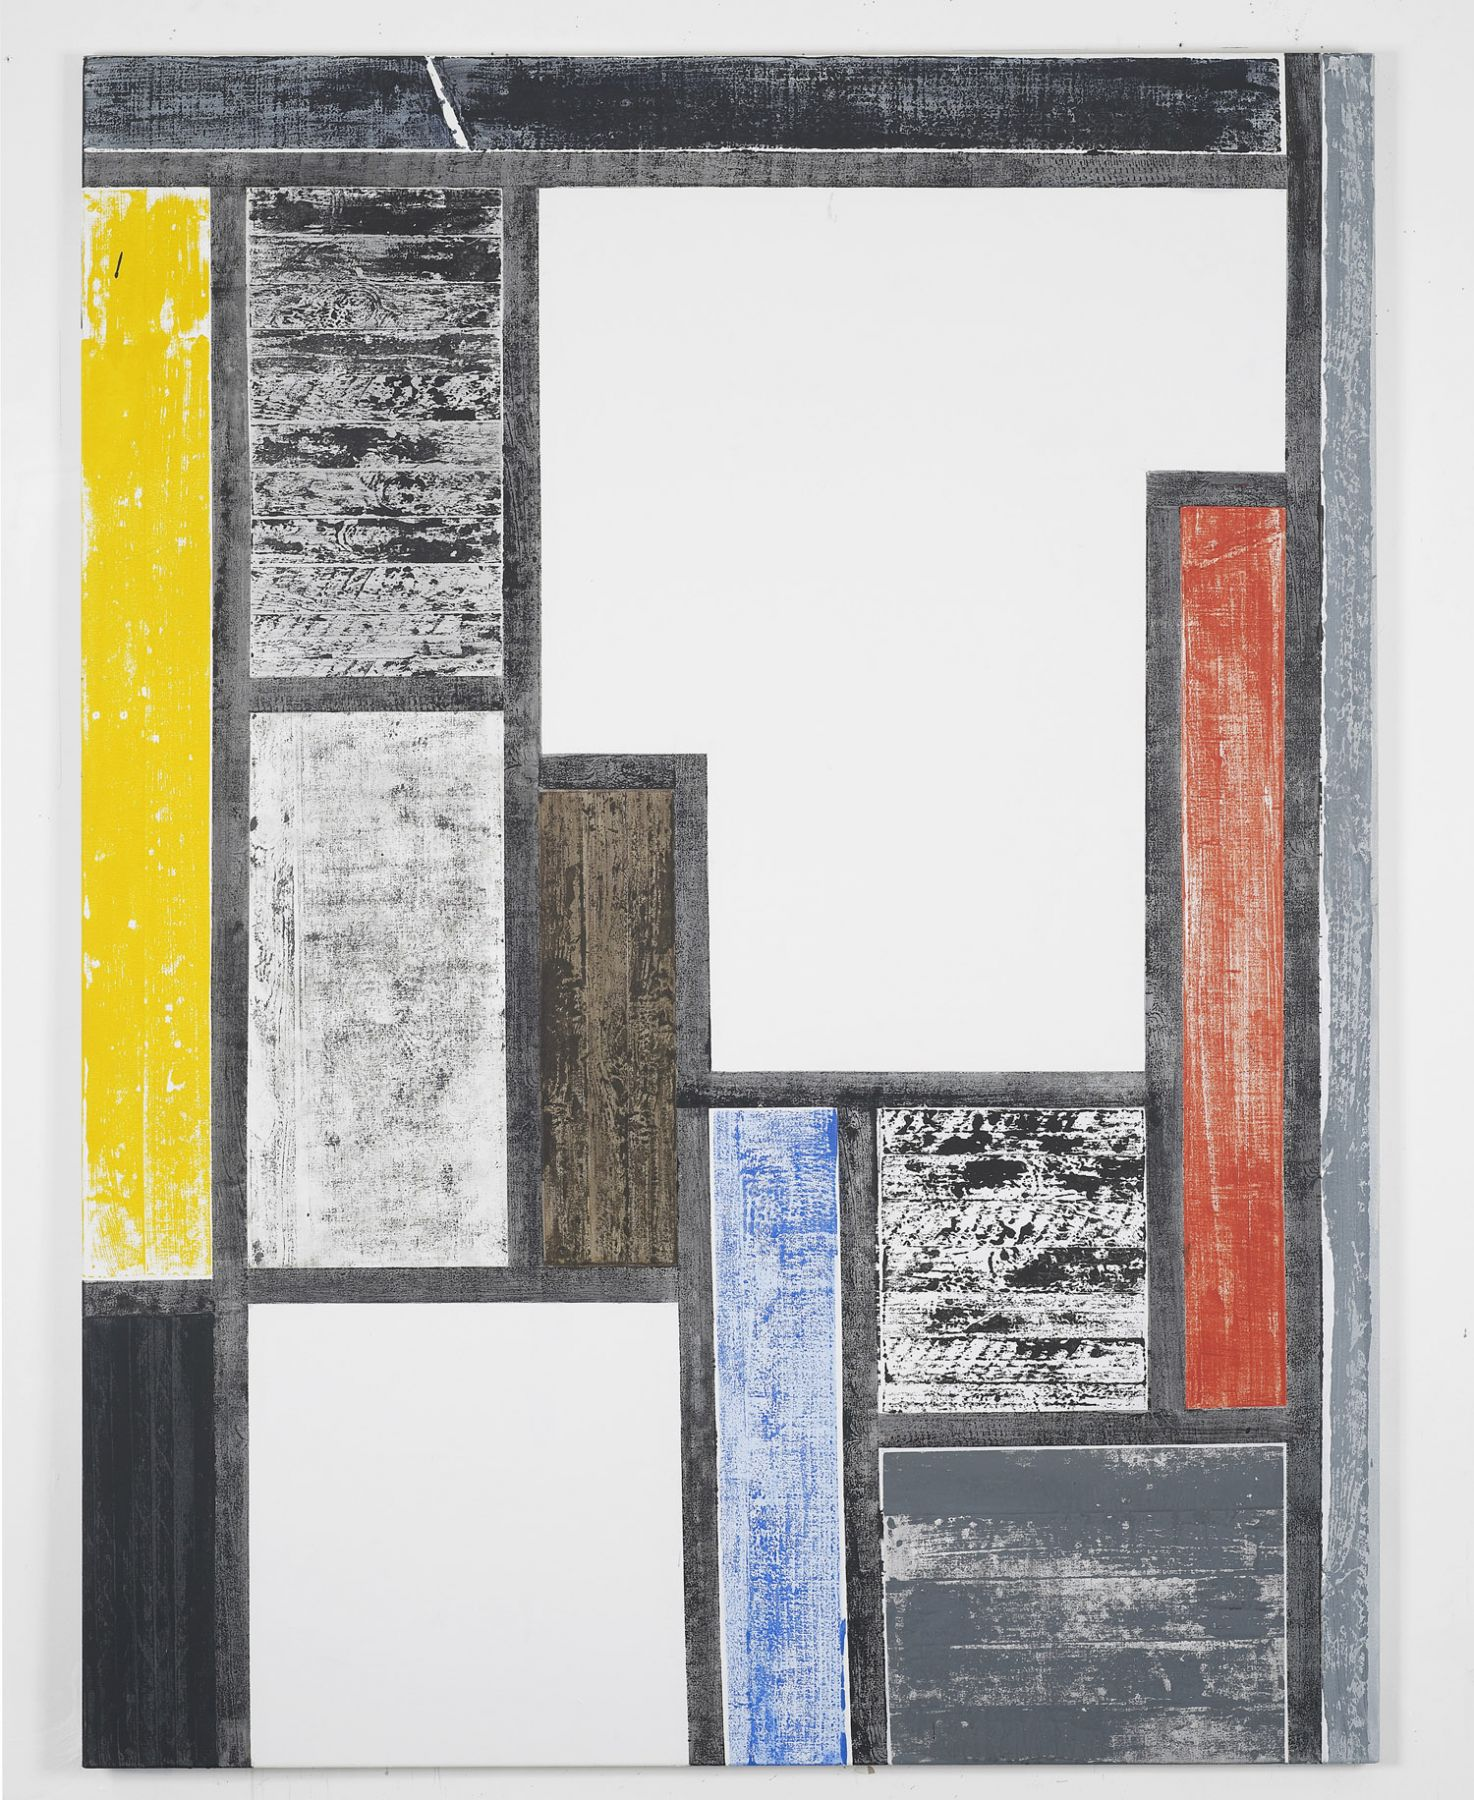 Structure IV (The New York Times, Sunday, June 27th, 1971), 2011, Acrylic on canvas